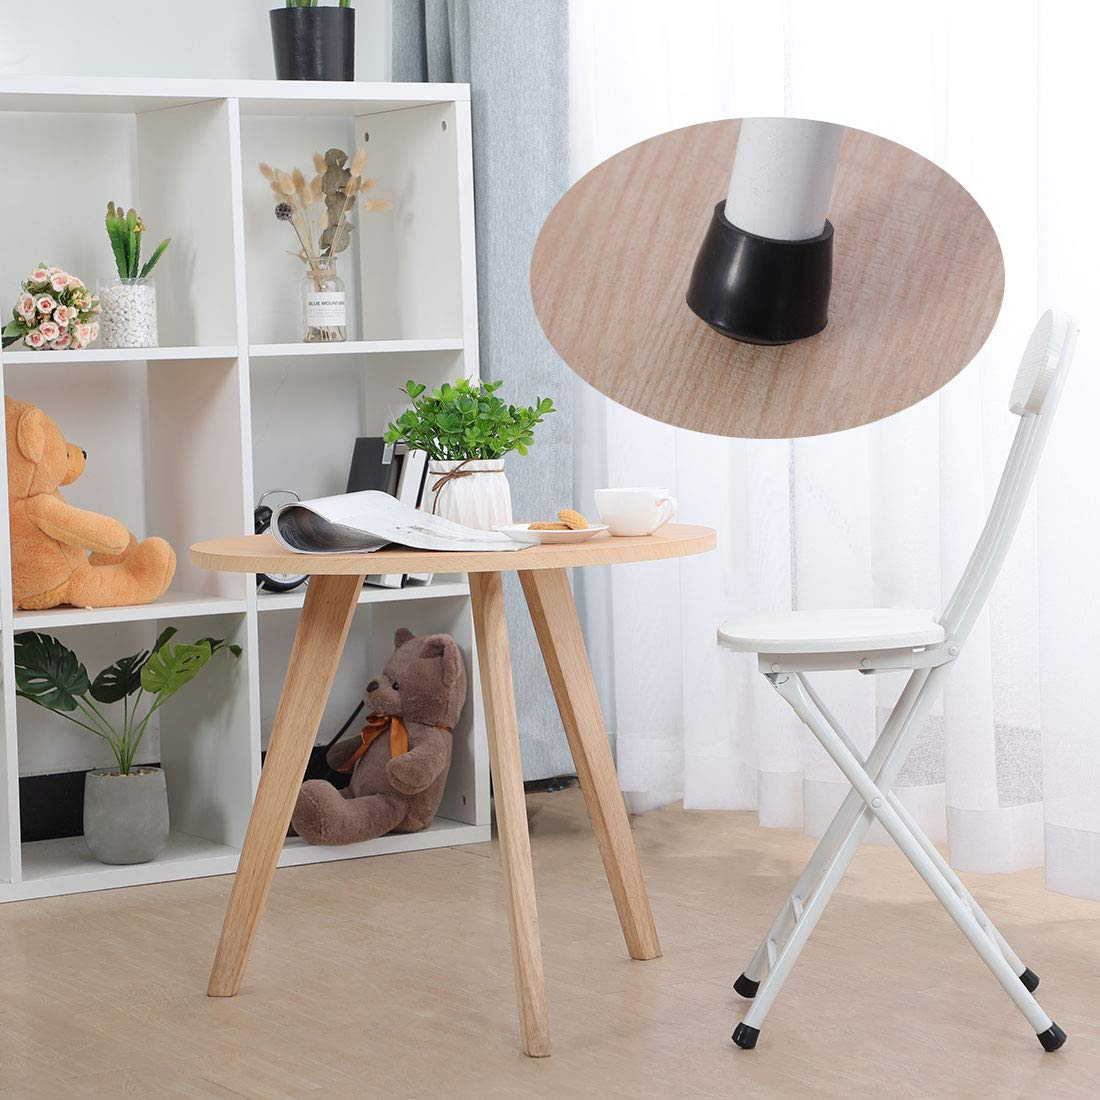 4pcs Chair Leg Caps Rubber Feet Protector Furniture Table Desk Round Head Covers